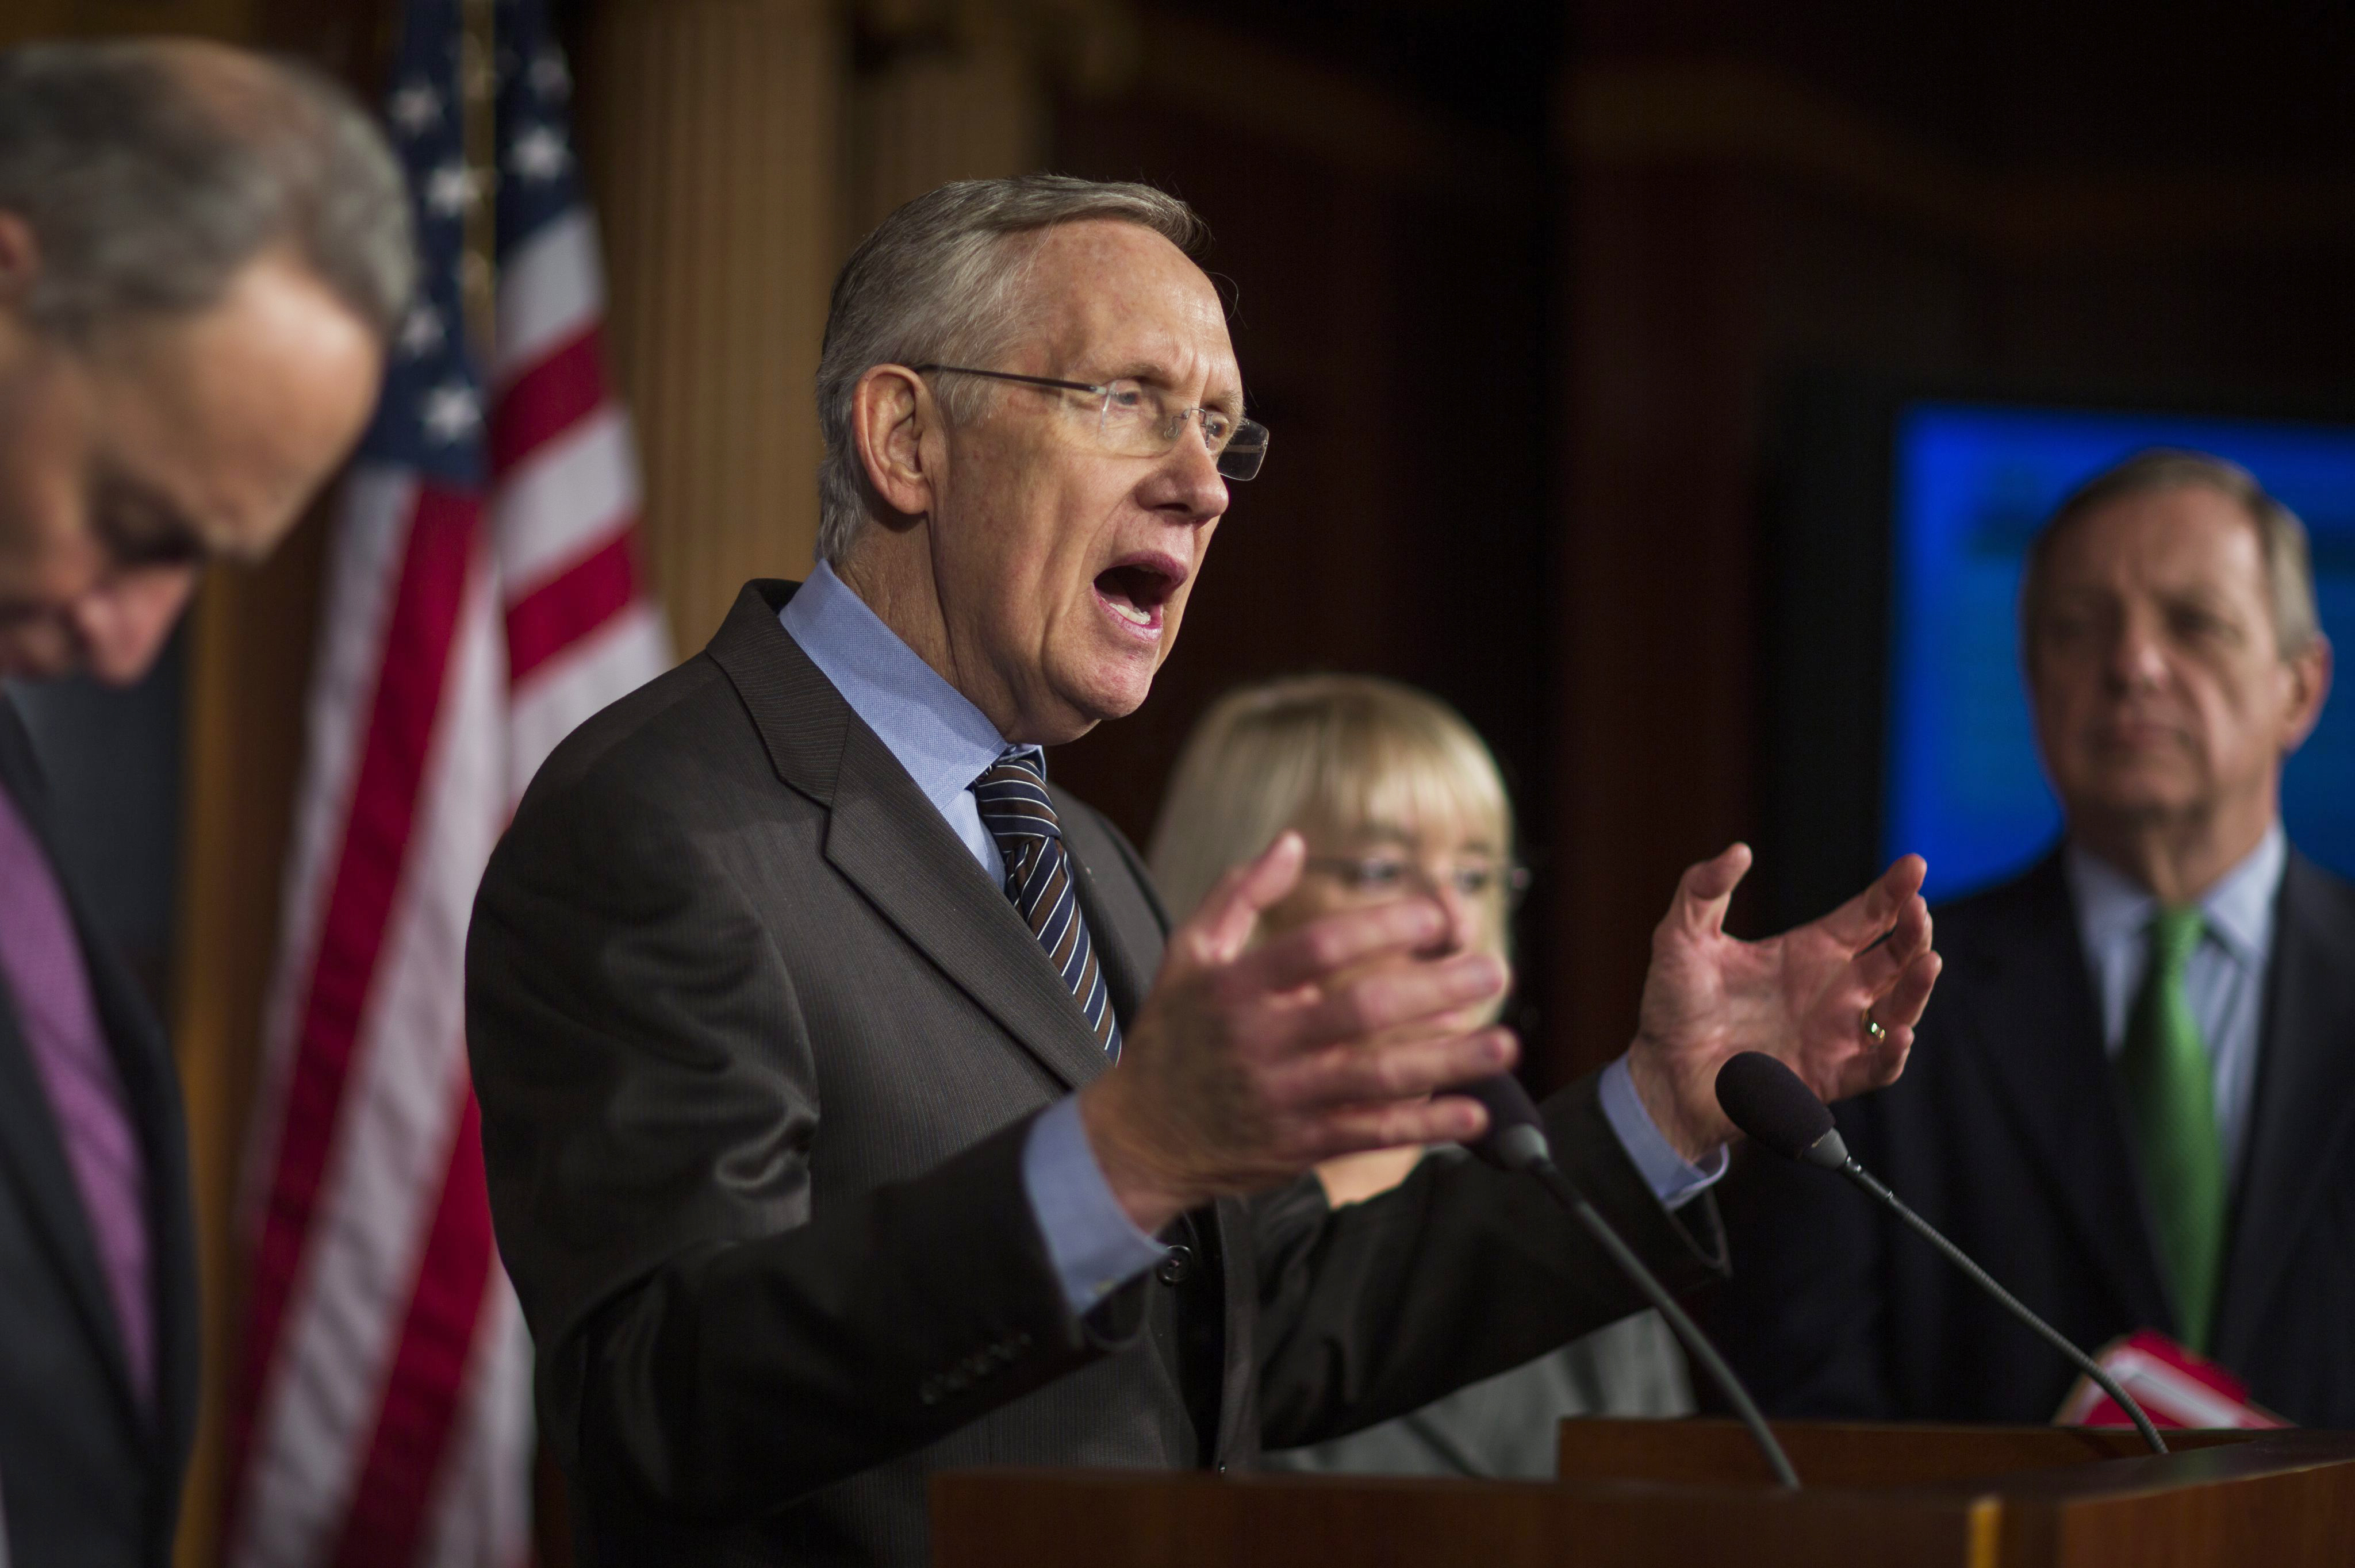 GOP Enraged After Filibuster Vote, But Does It Change Much?